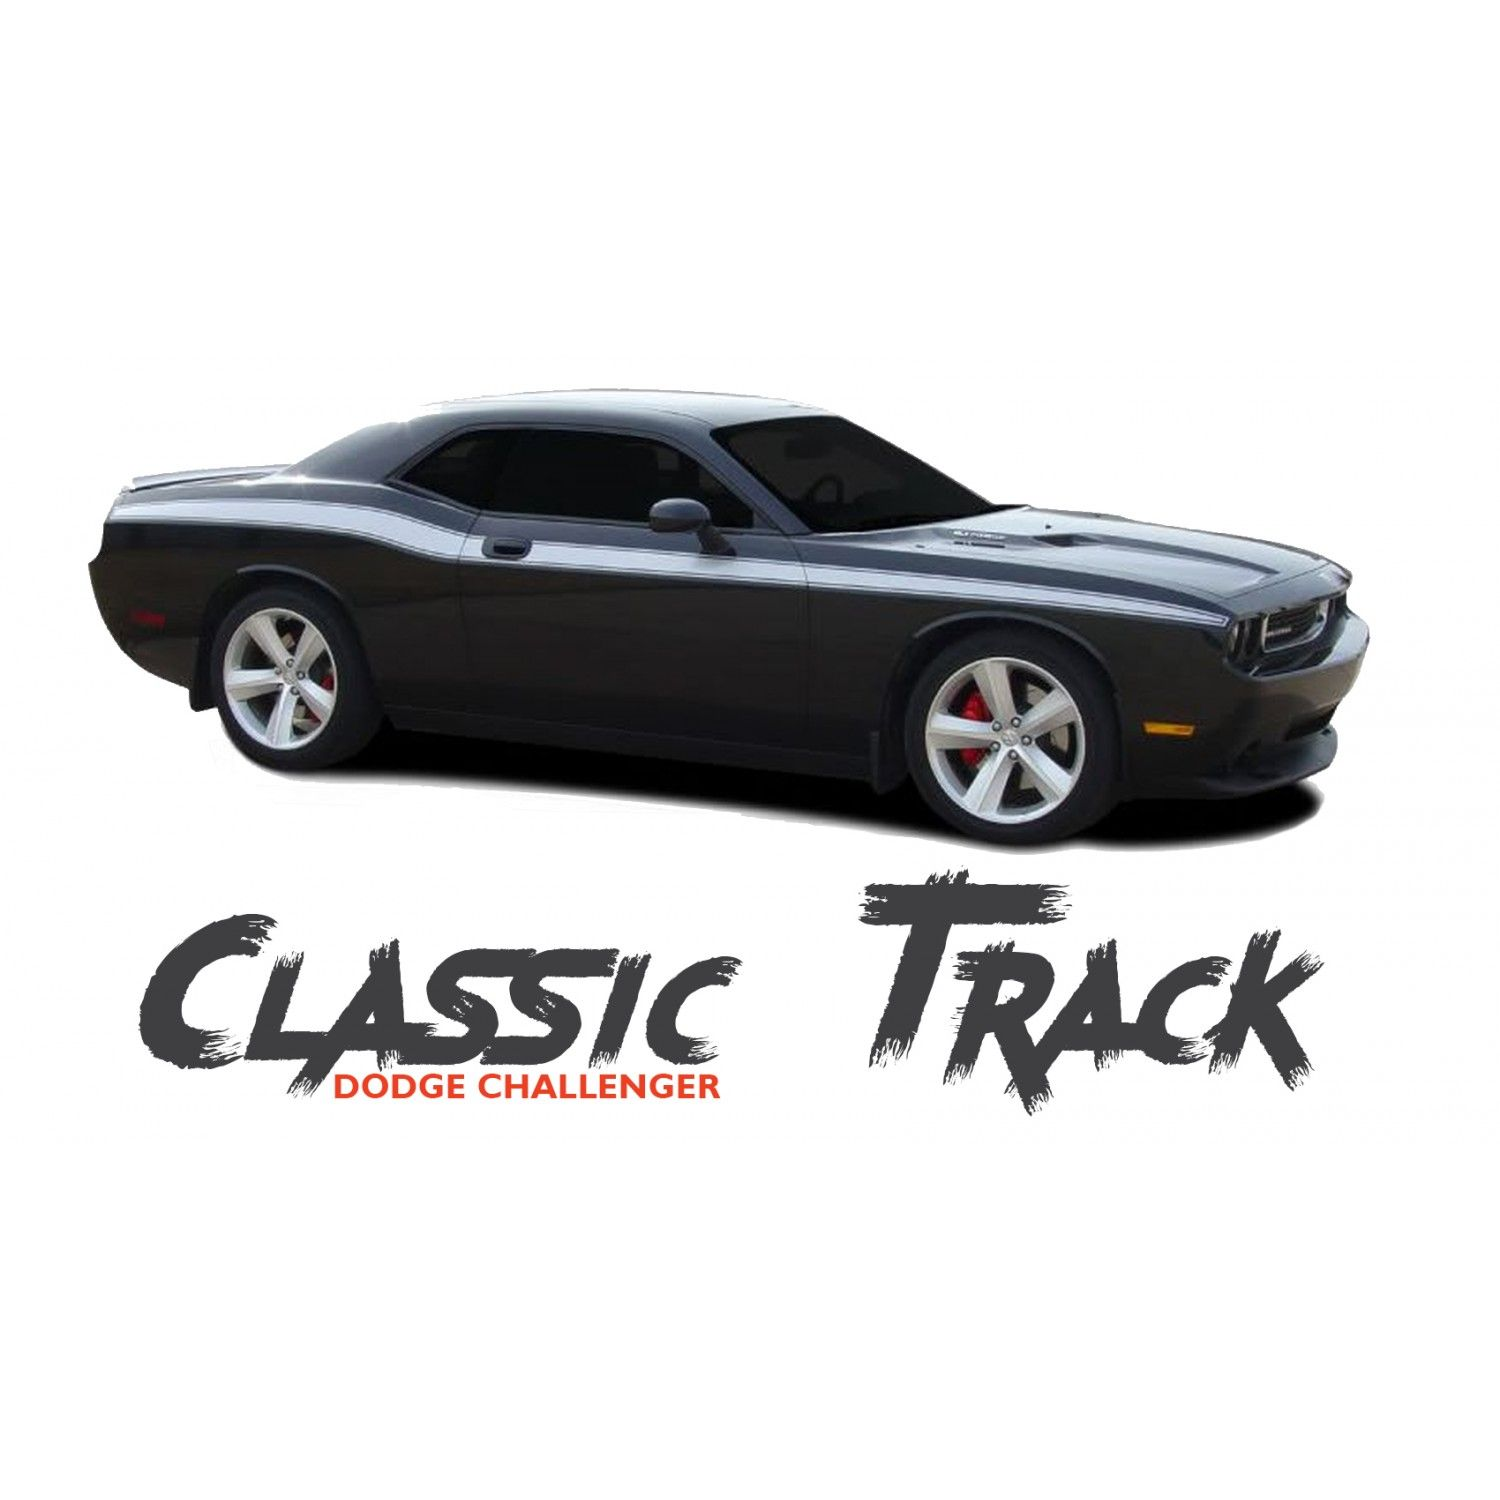 Dodge challenger classic track upper door accent body line striping vinyl graphic kit 2010 2011 2012